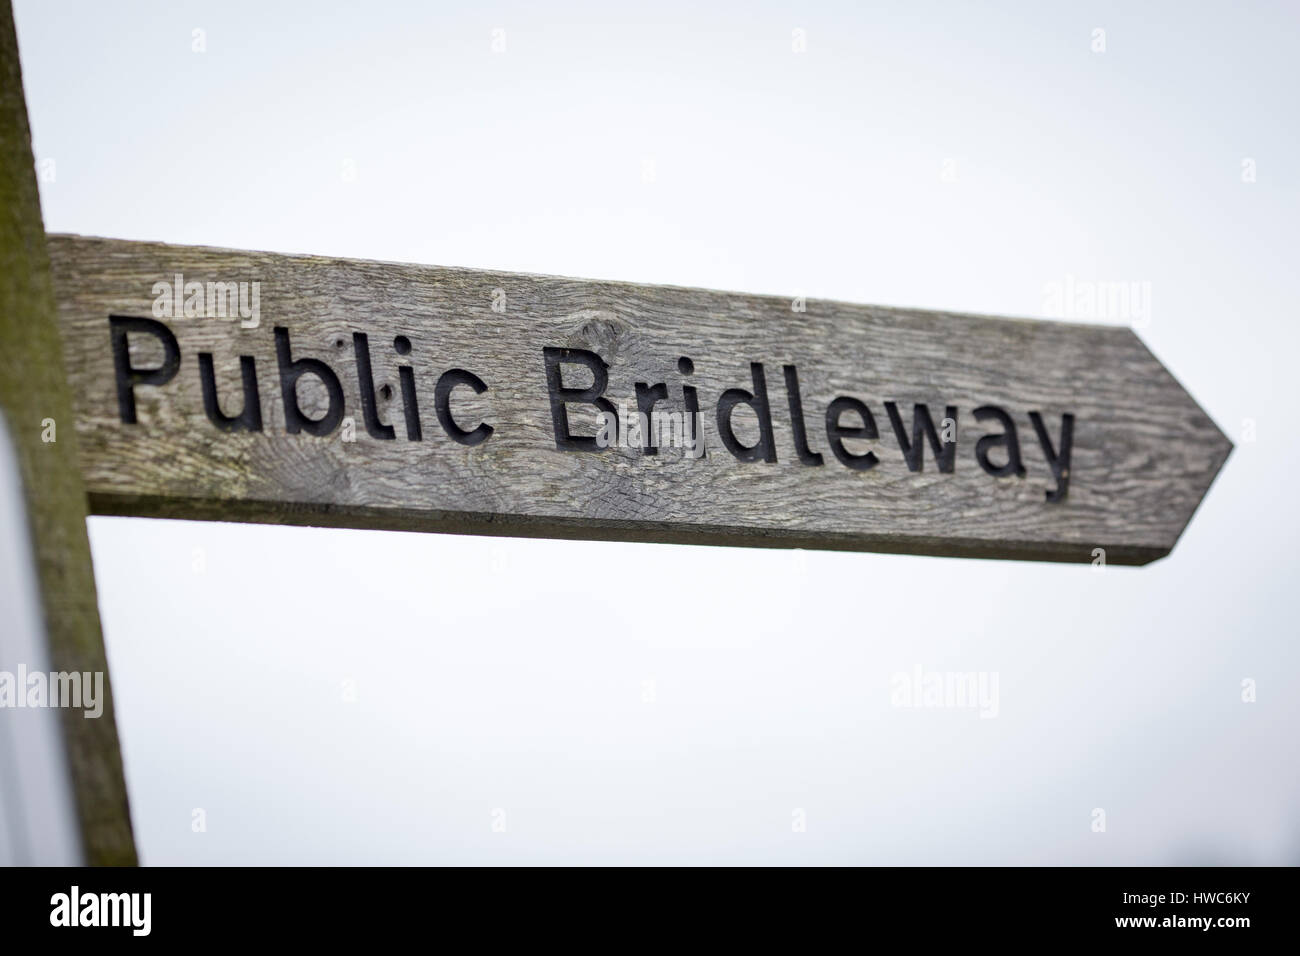 Public bridleway sign in England - Stock Image